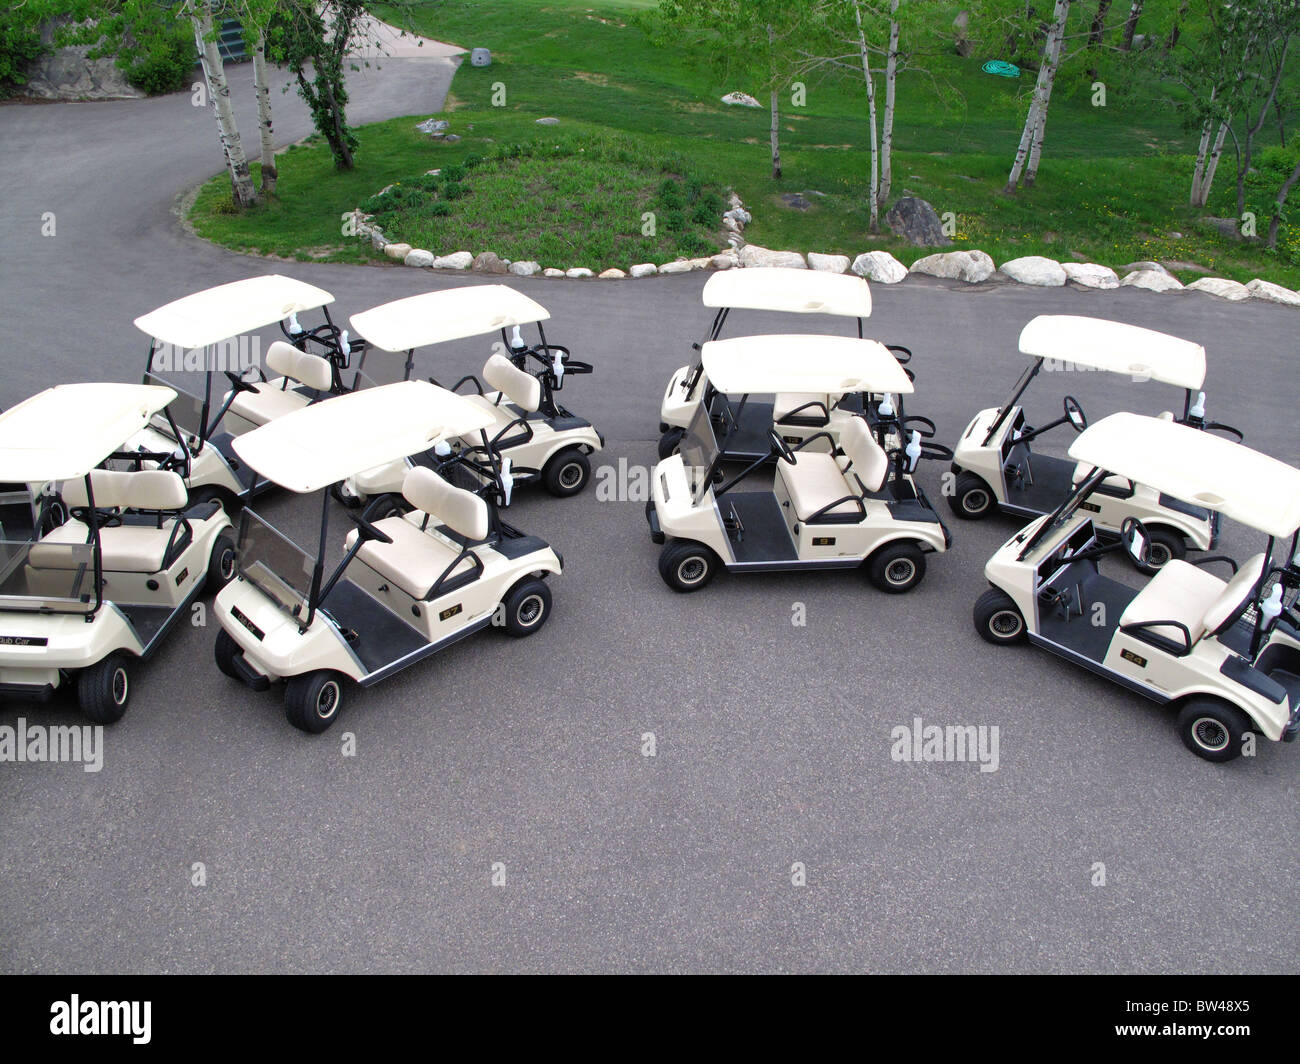 Golf carts parked in preparation for a tournament. - Stock Image